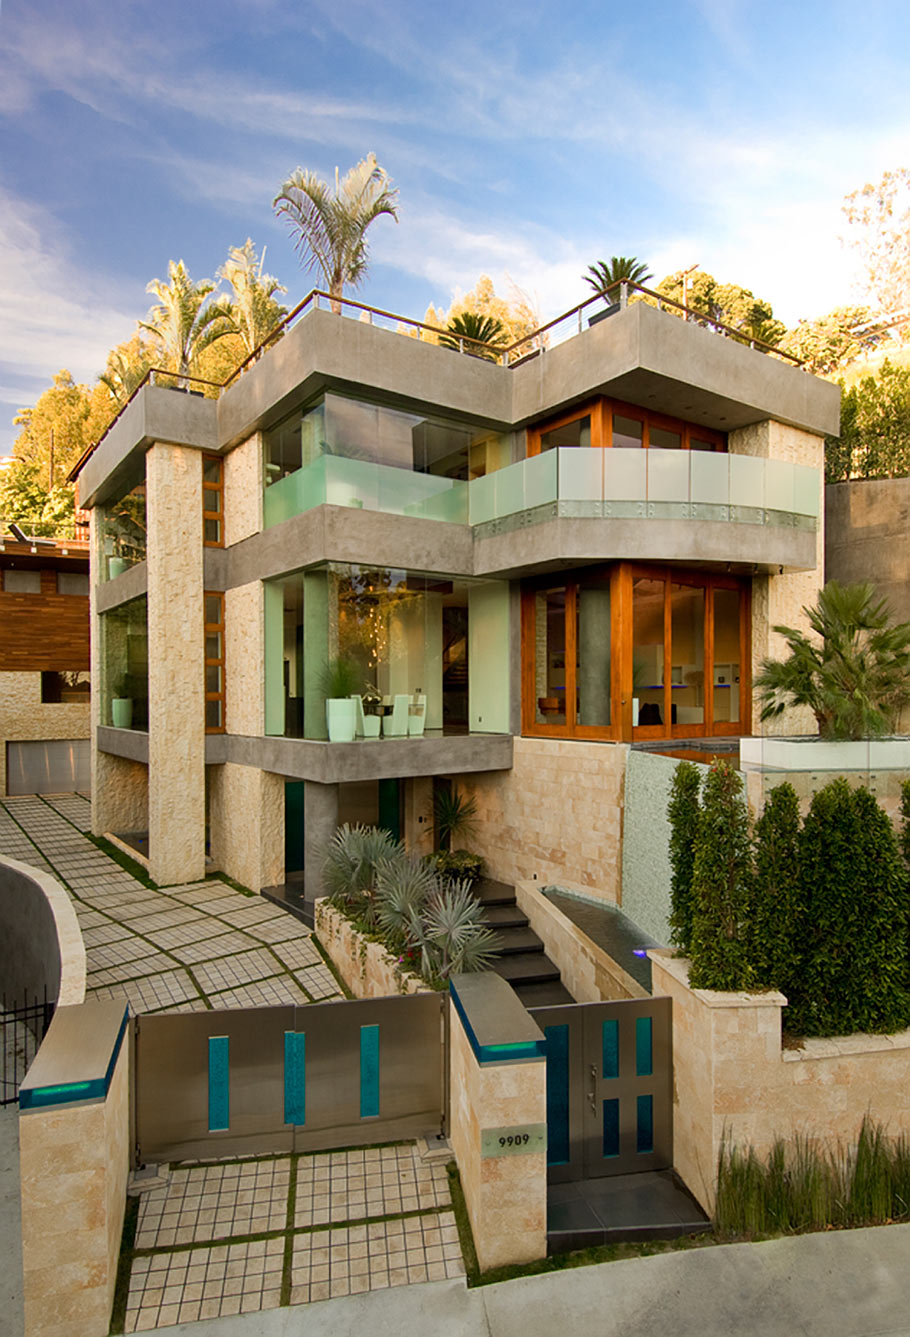 Luxury los angeles real estate for sale via ben bacal for Luxury houses for rent in los angeles